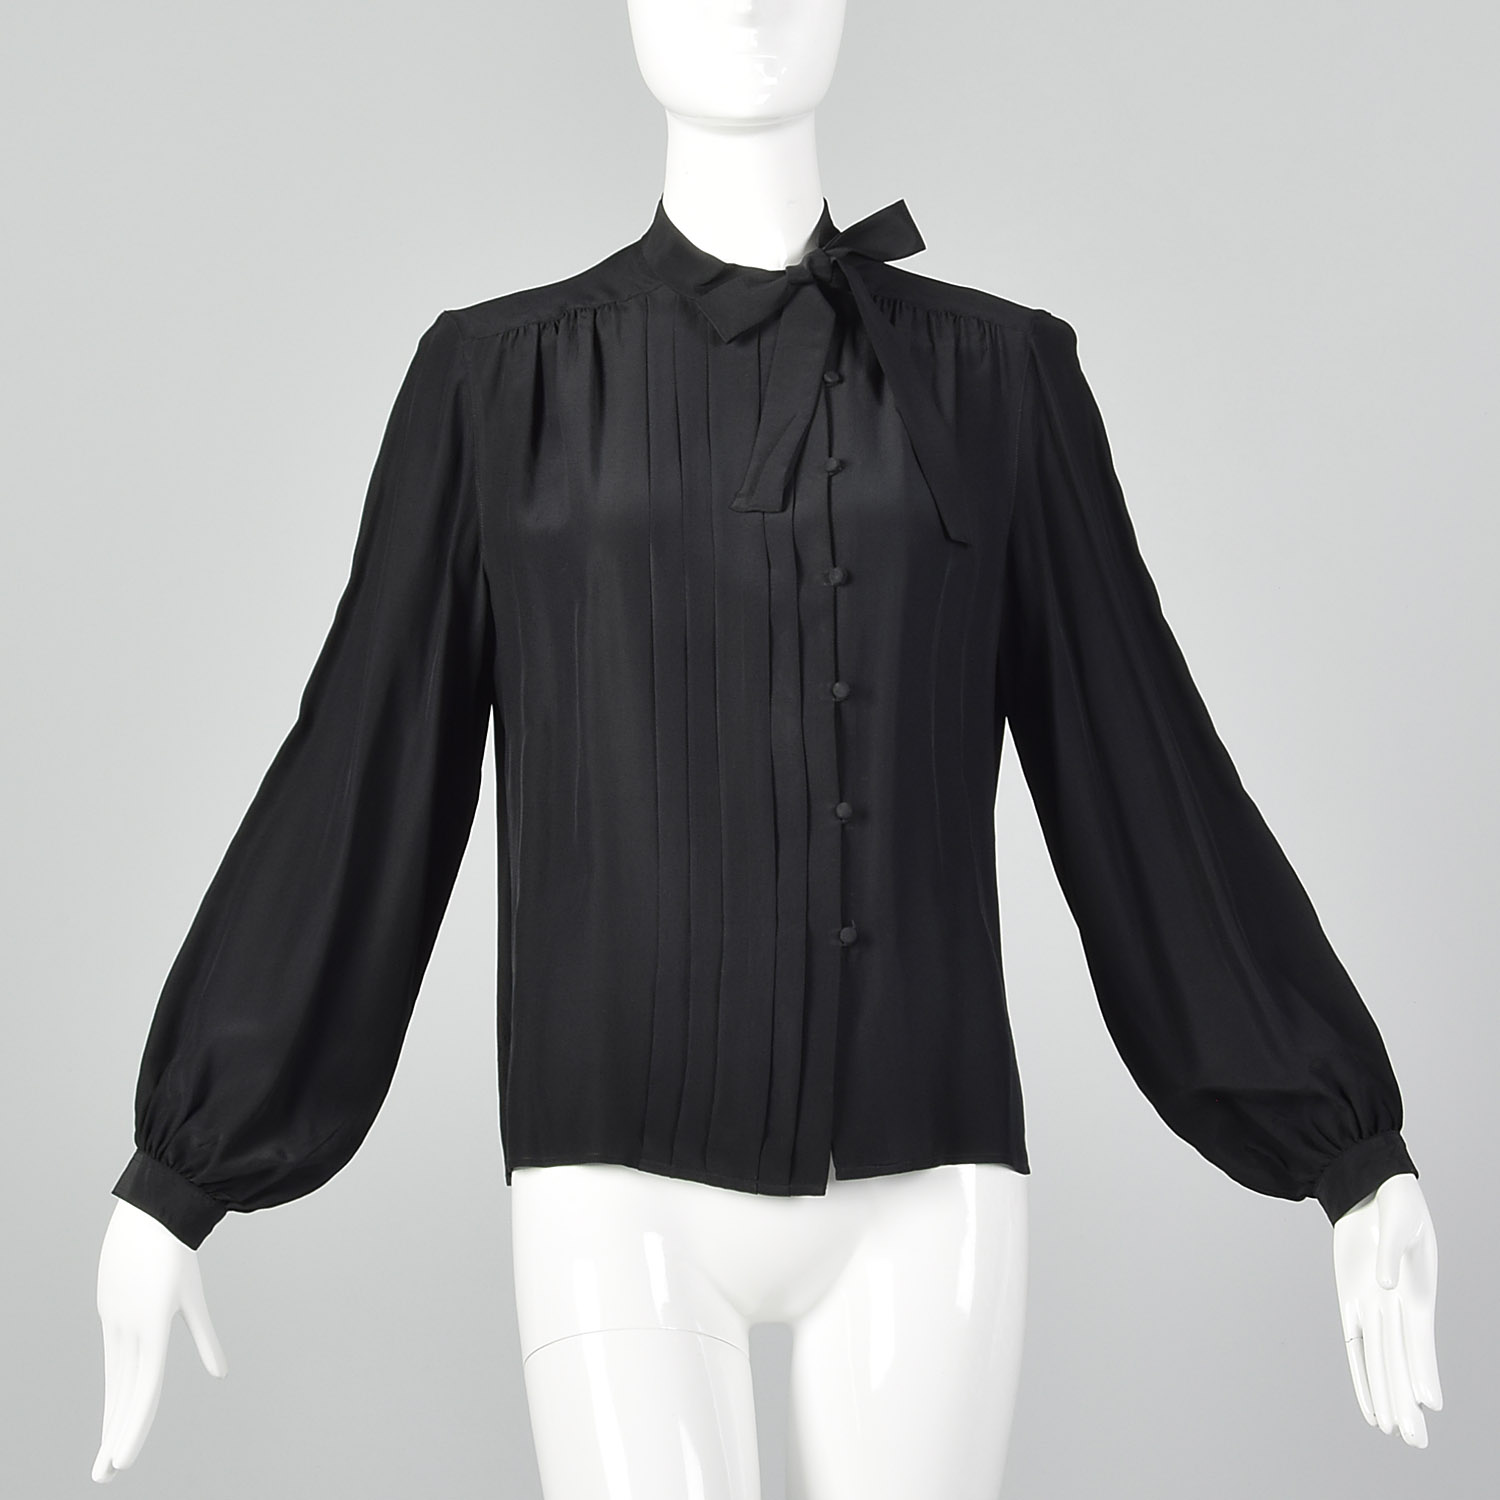 ba916b36db53a7 Details about Small 1980s Christian Dior Separates Silk Blouse 1970s Vintage  Shirt Black Top